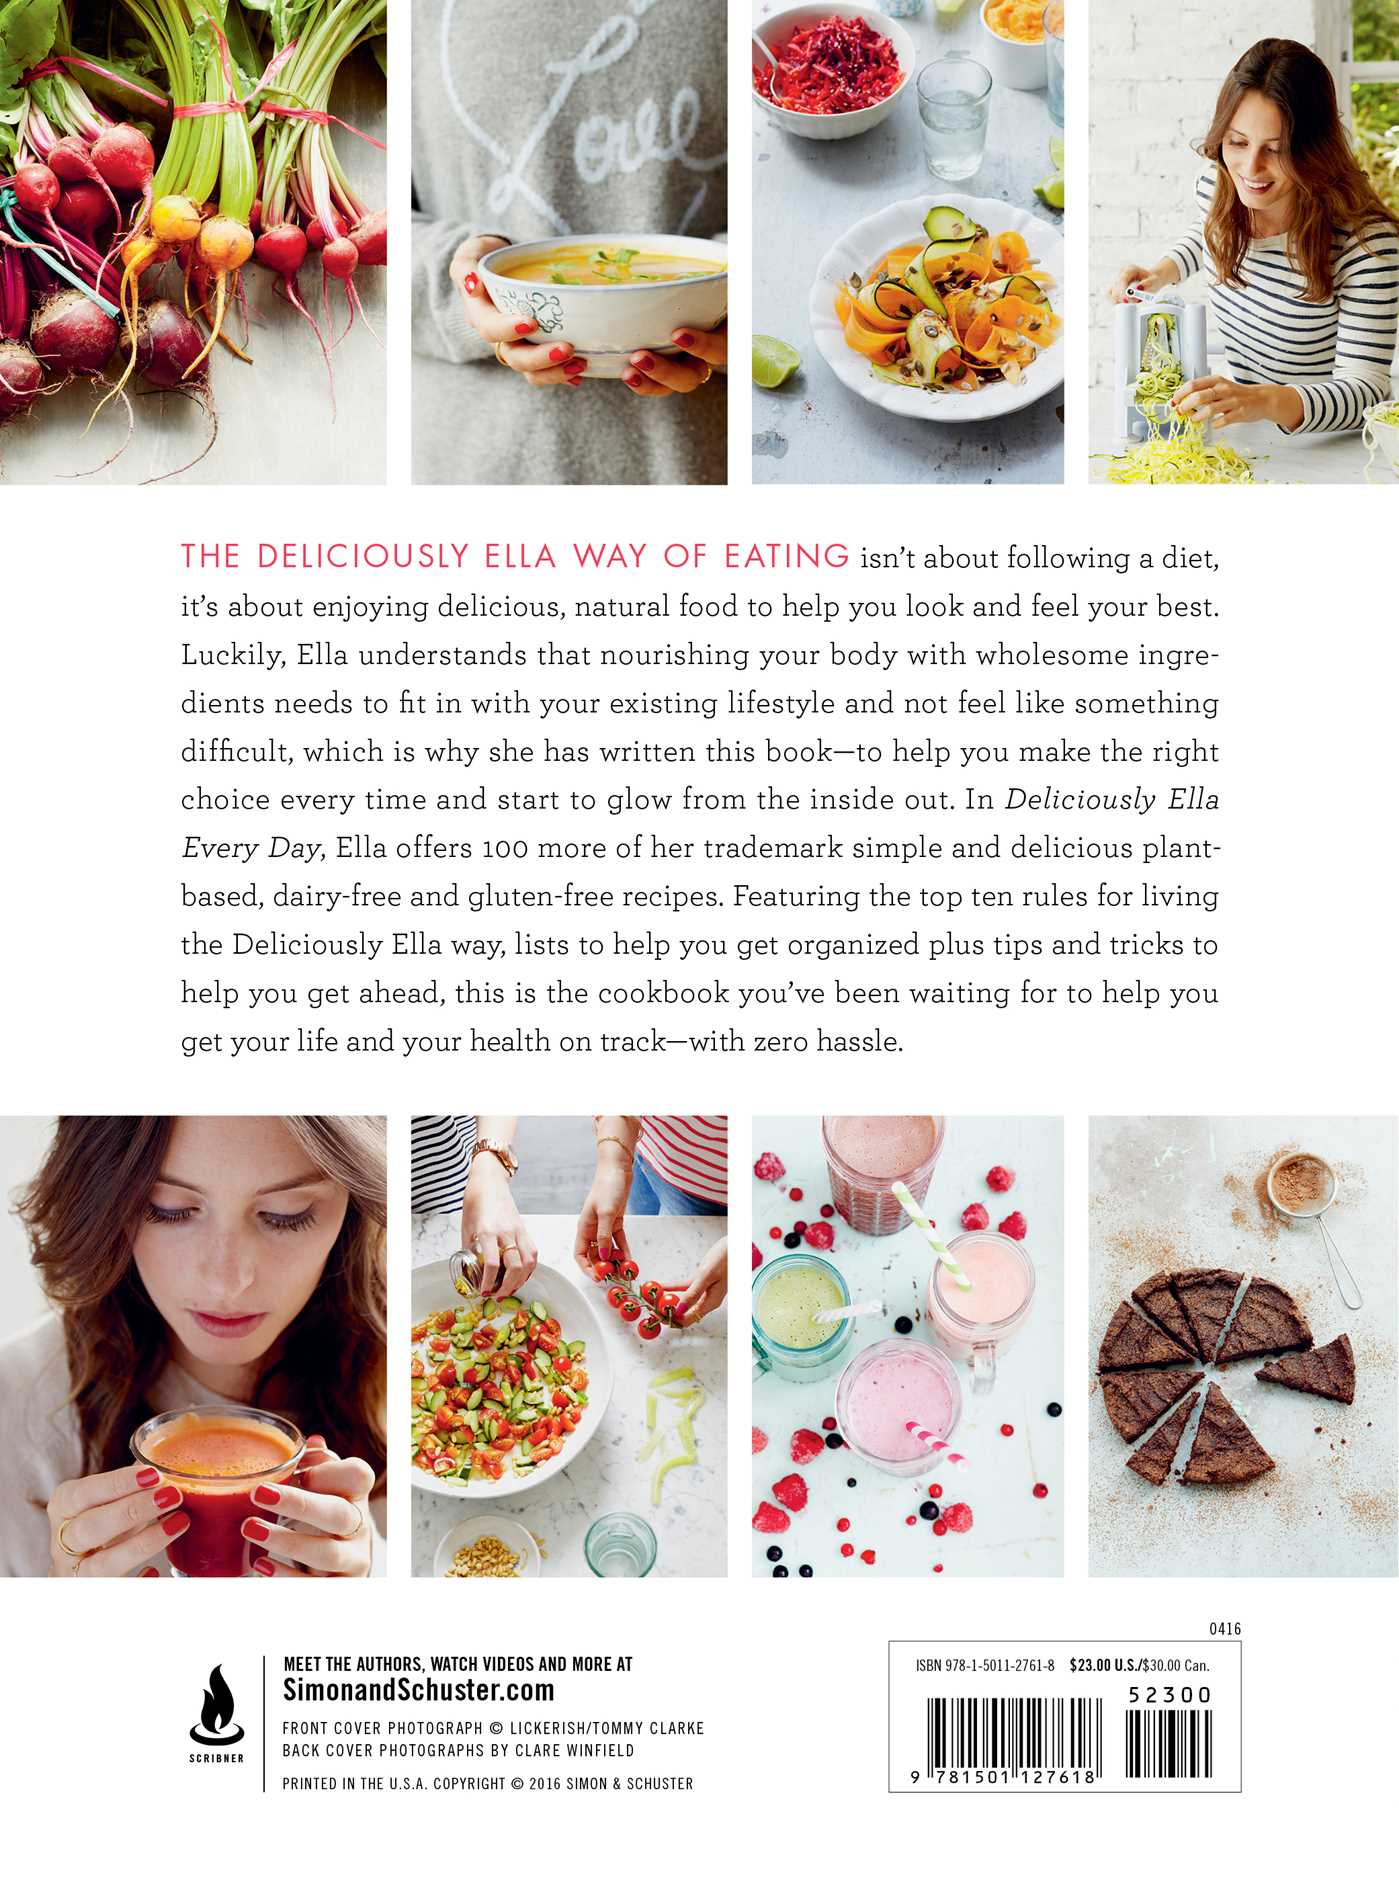 Deliciously ella every day book by ella woodward official deliciously ella every day 9781501127618 hr back forumfinder Images